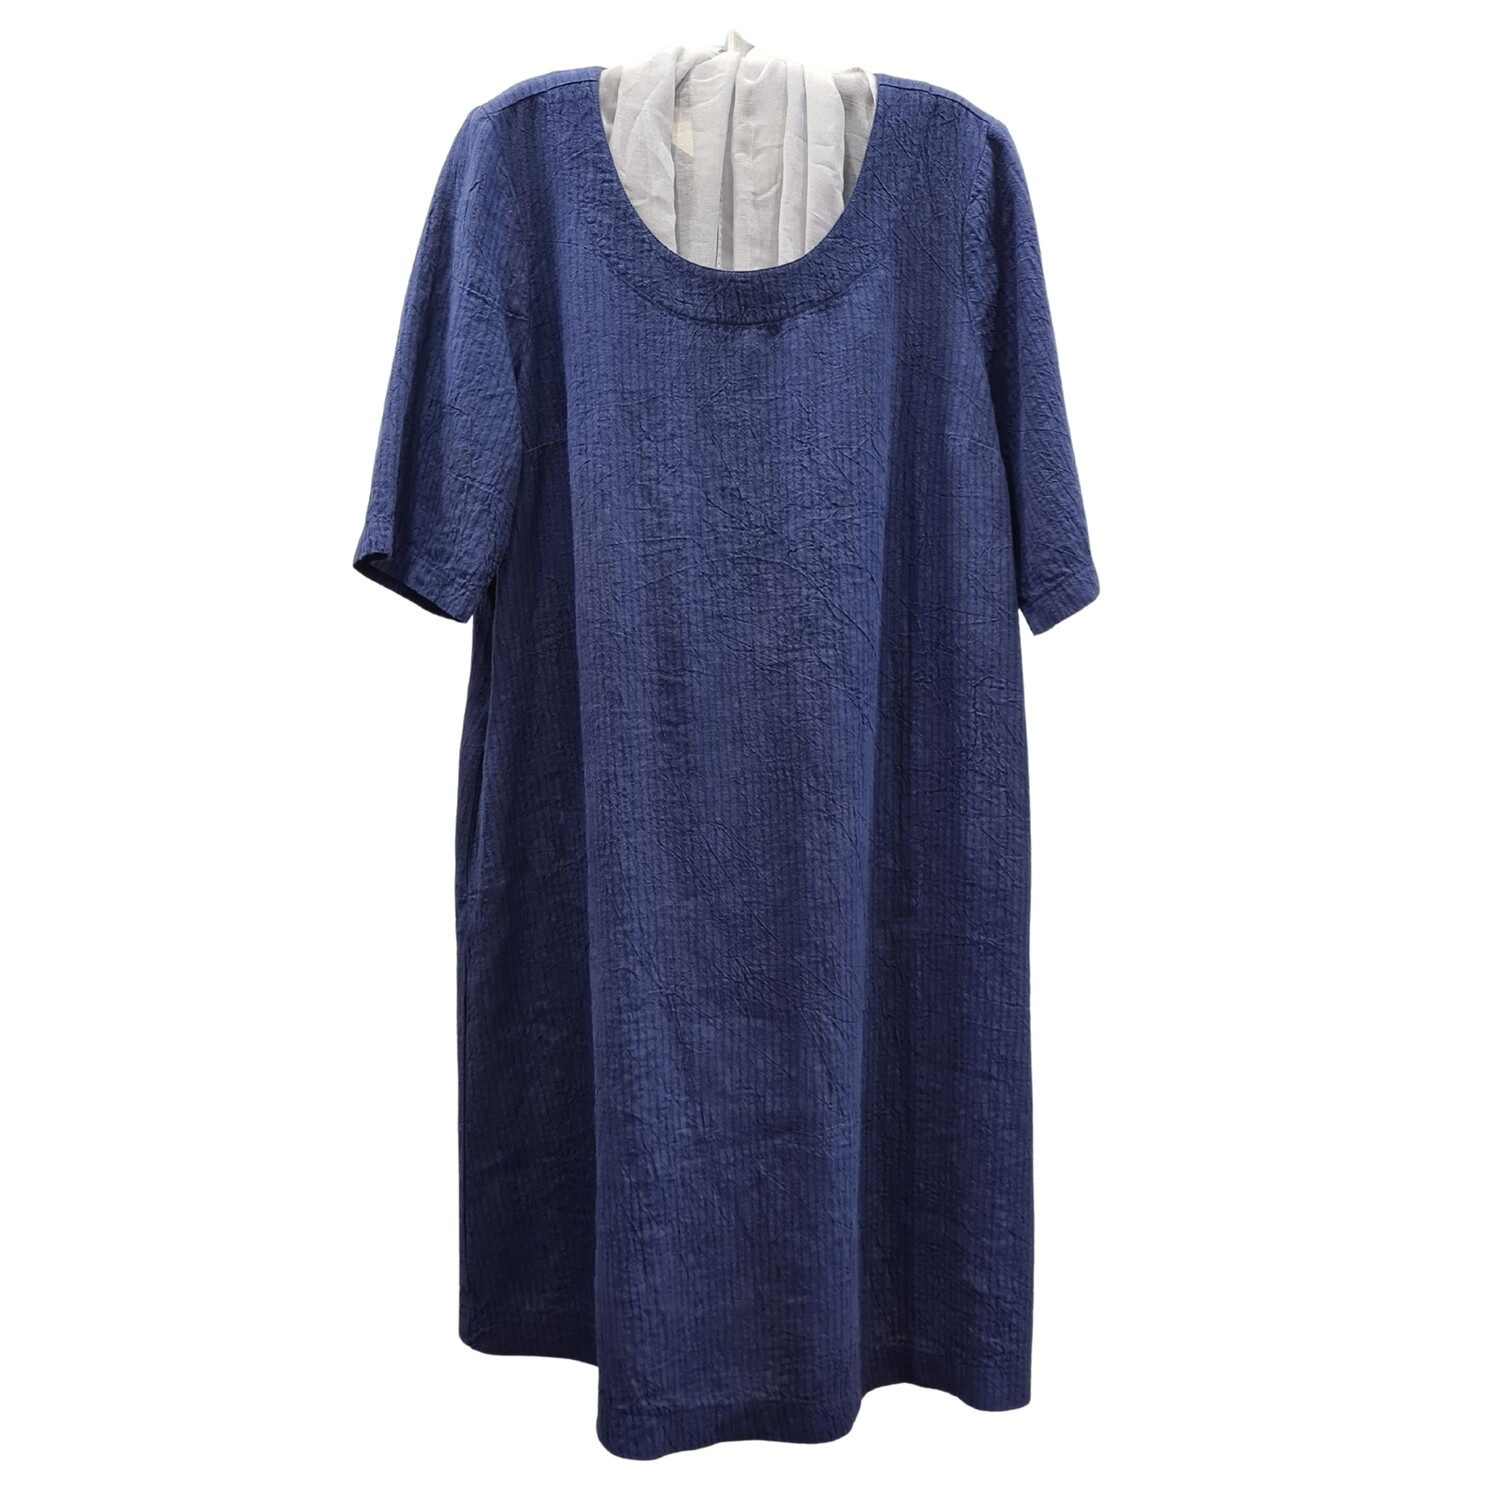 Crushed Linen Summer Dress with Pockets